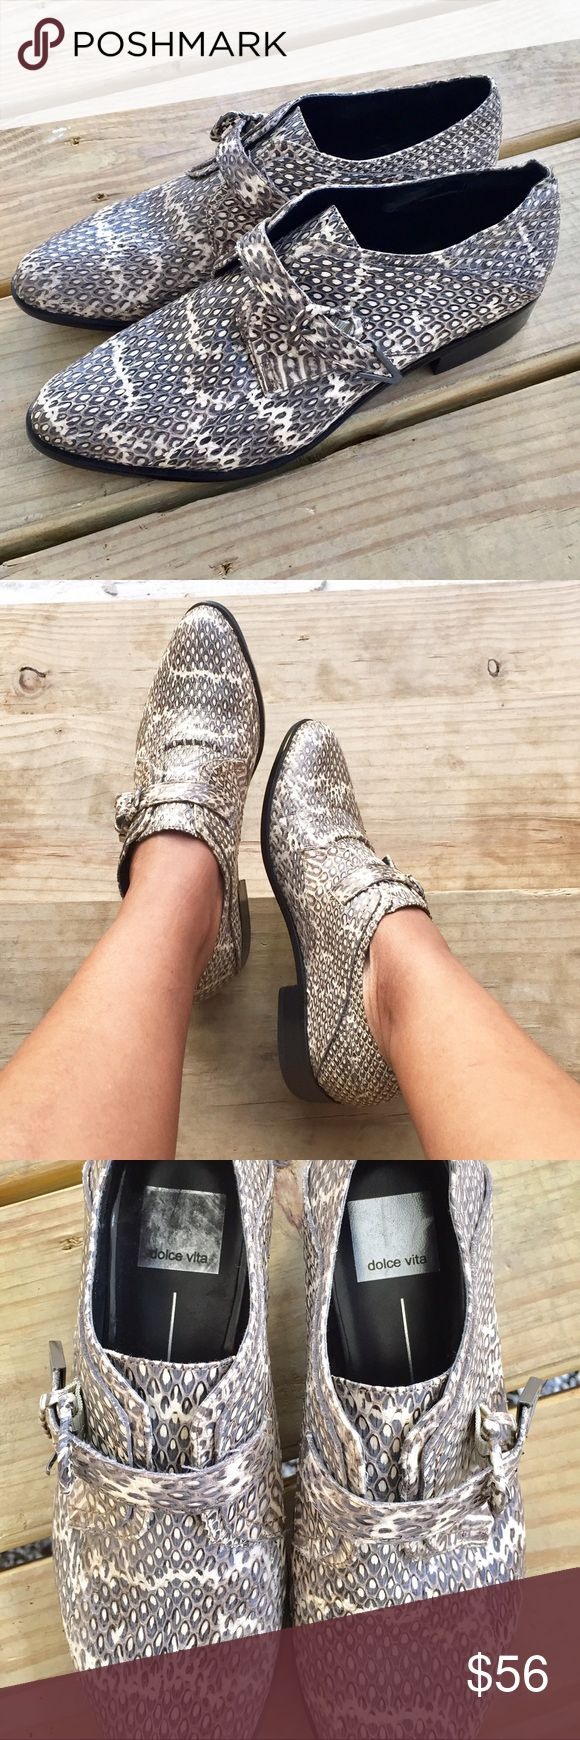 Dolce Vita Python Print Shoes!! Casual oxford style shoes with trendy python print and top buckle!! Gently used condition!! Dolce Vita Shoes